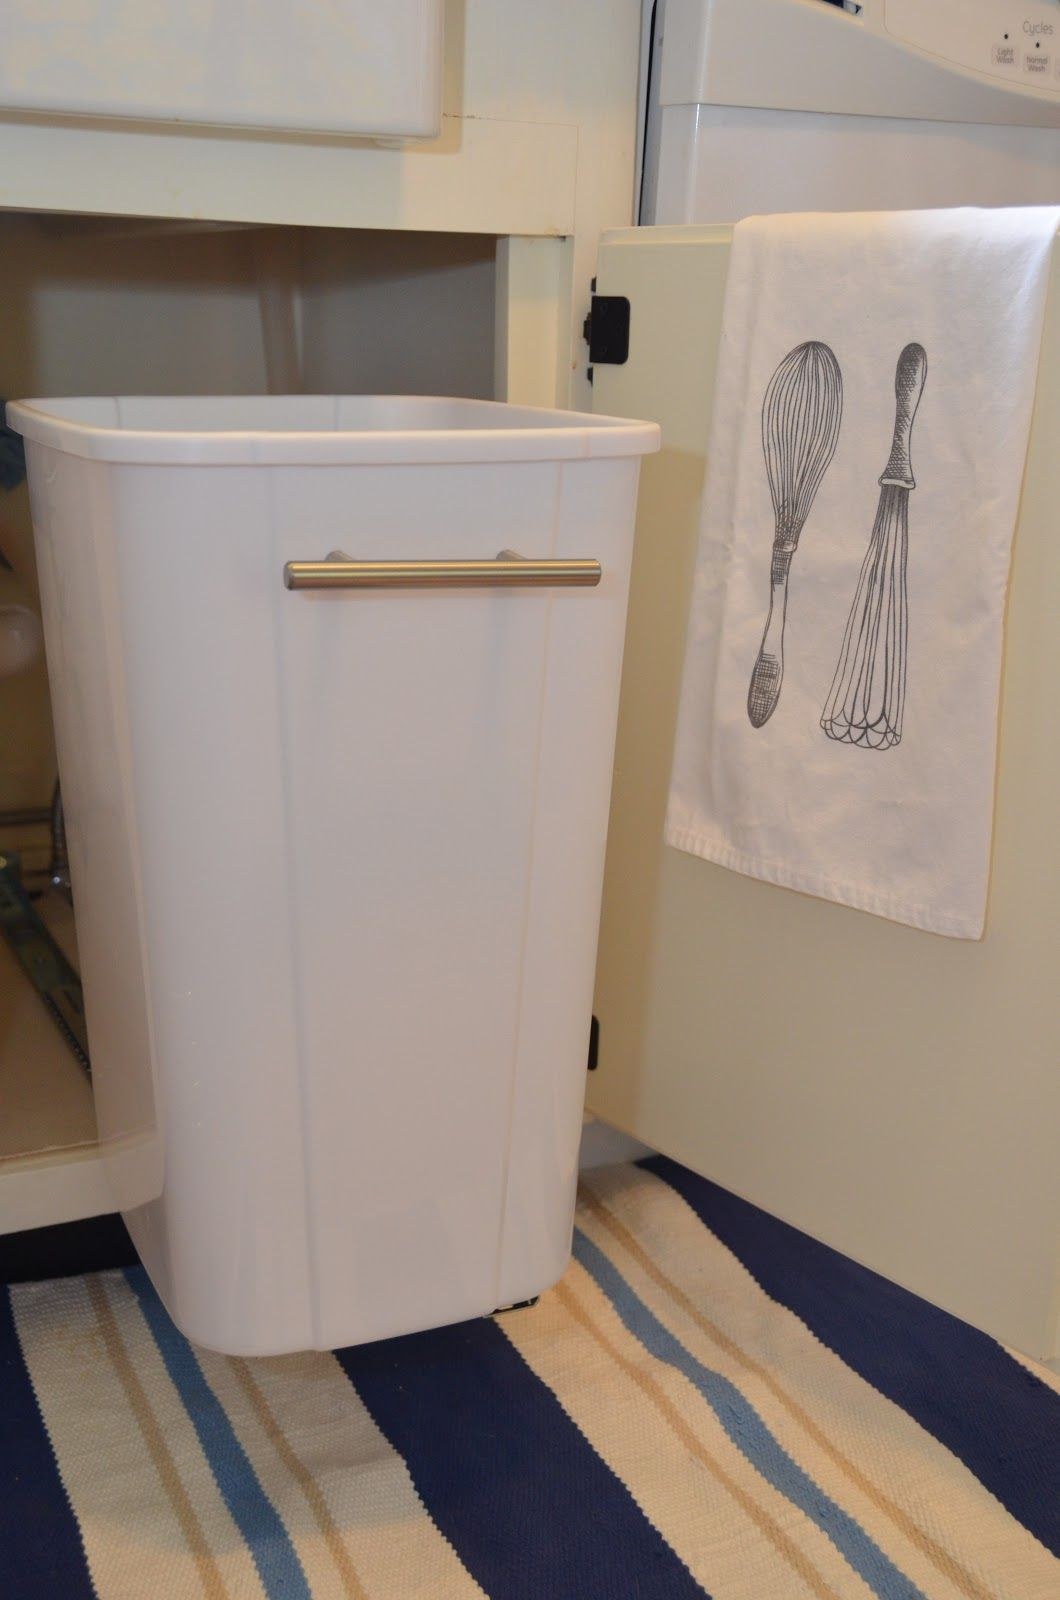 10 Easy Trash Can Upgrades You Didn T Know You Needed Under Sink